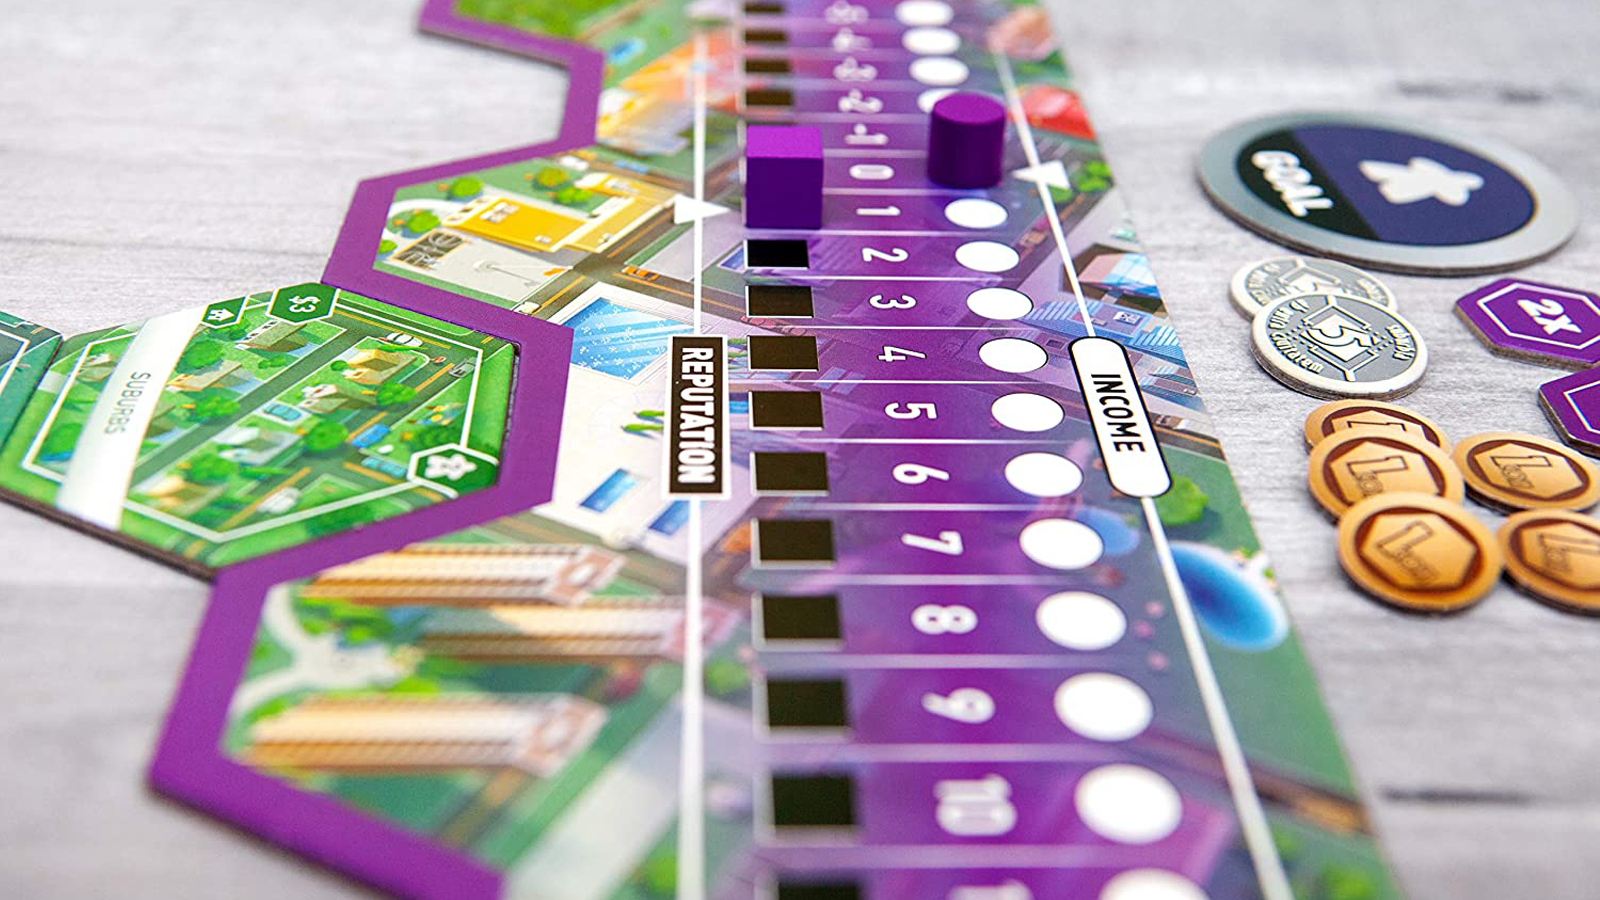 View of one player's income and reputation meter in Suburbia